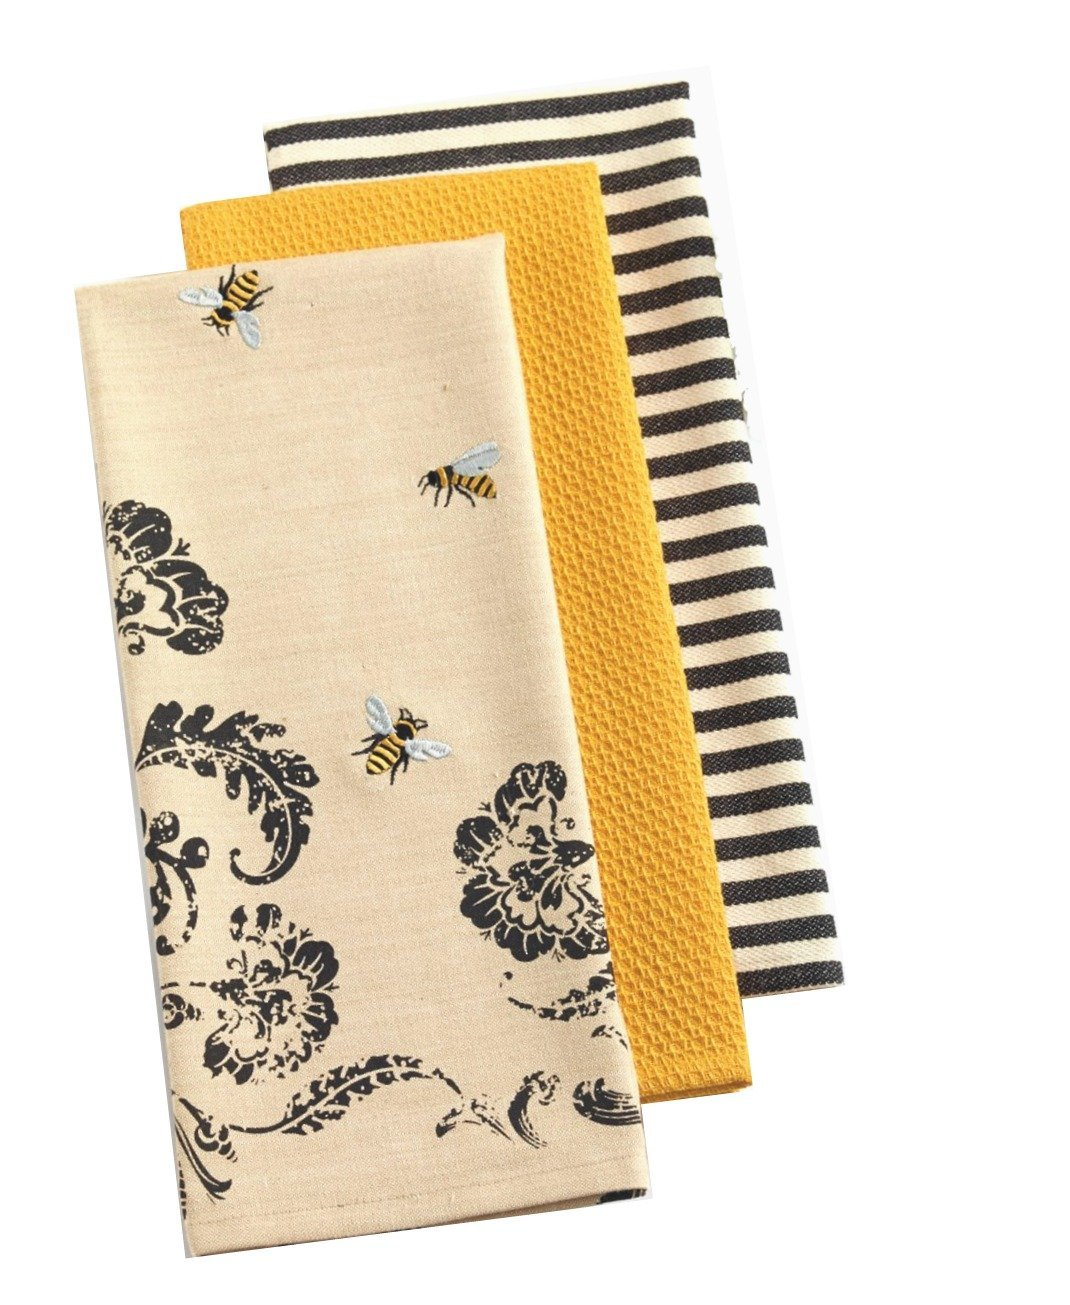 Design Imports India, Dishtowel Busy Bee Printed, 3 Count